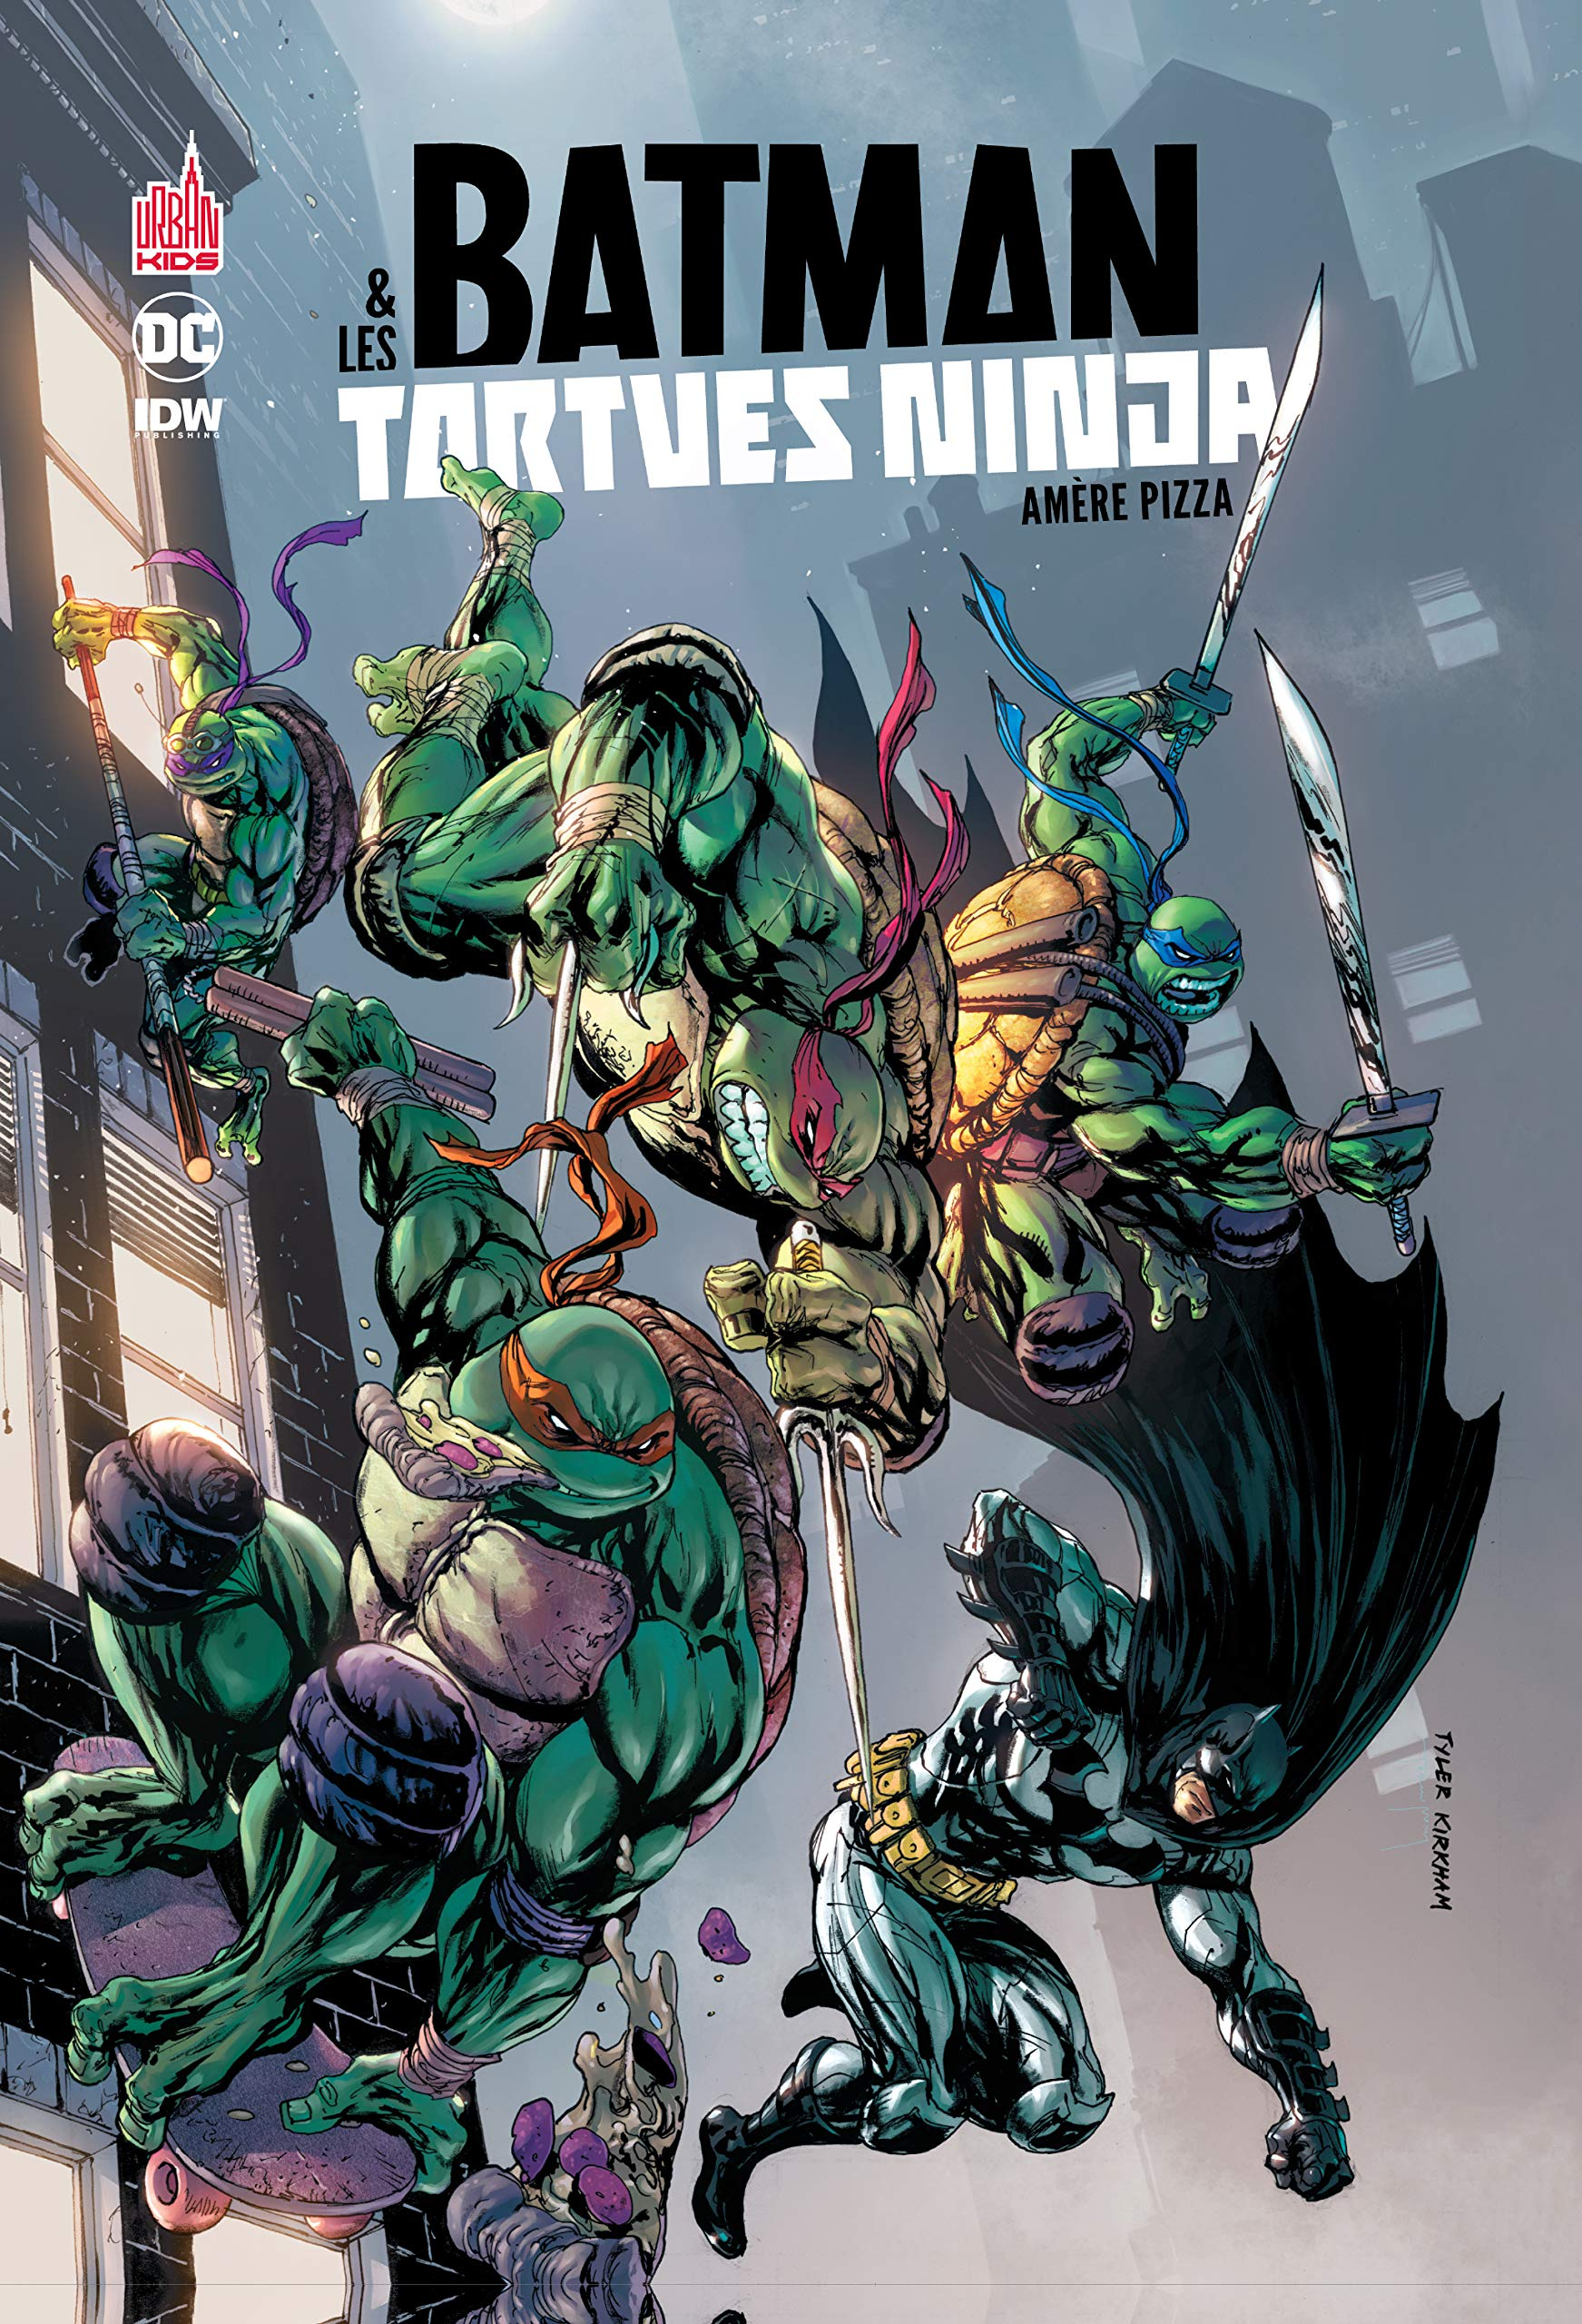 Batman & les Tortues Ninja tome 1 (URBAN KIDS): Amazon.es ...